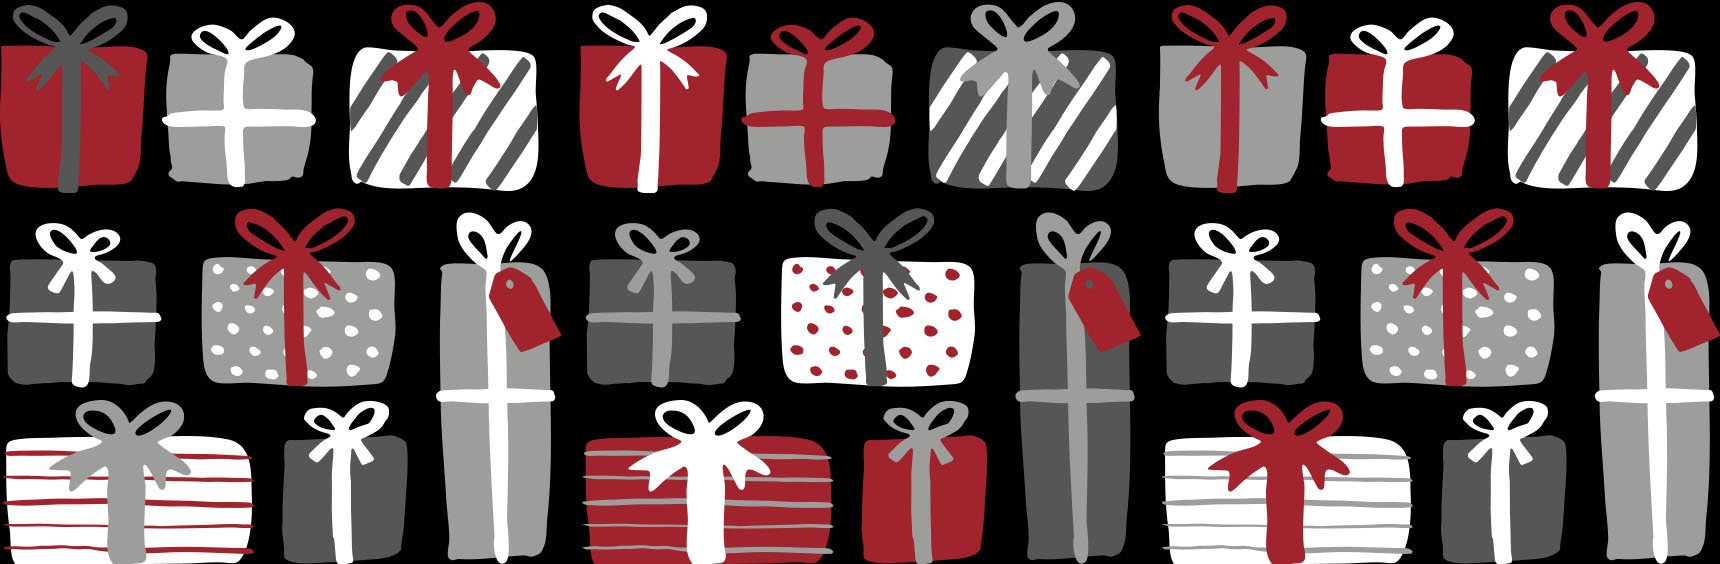 Red, silver, and white gifts graphic